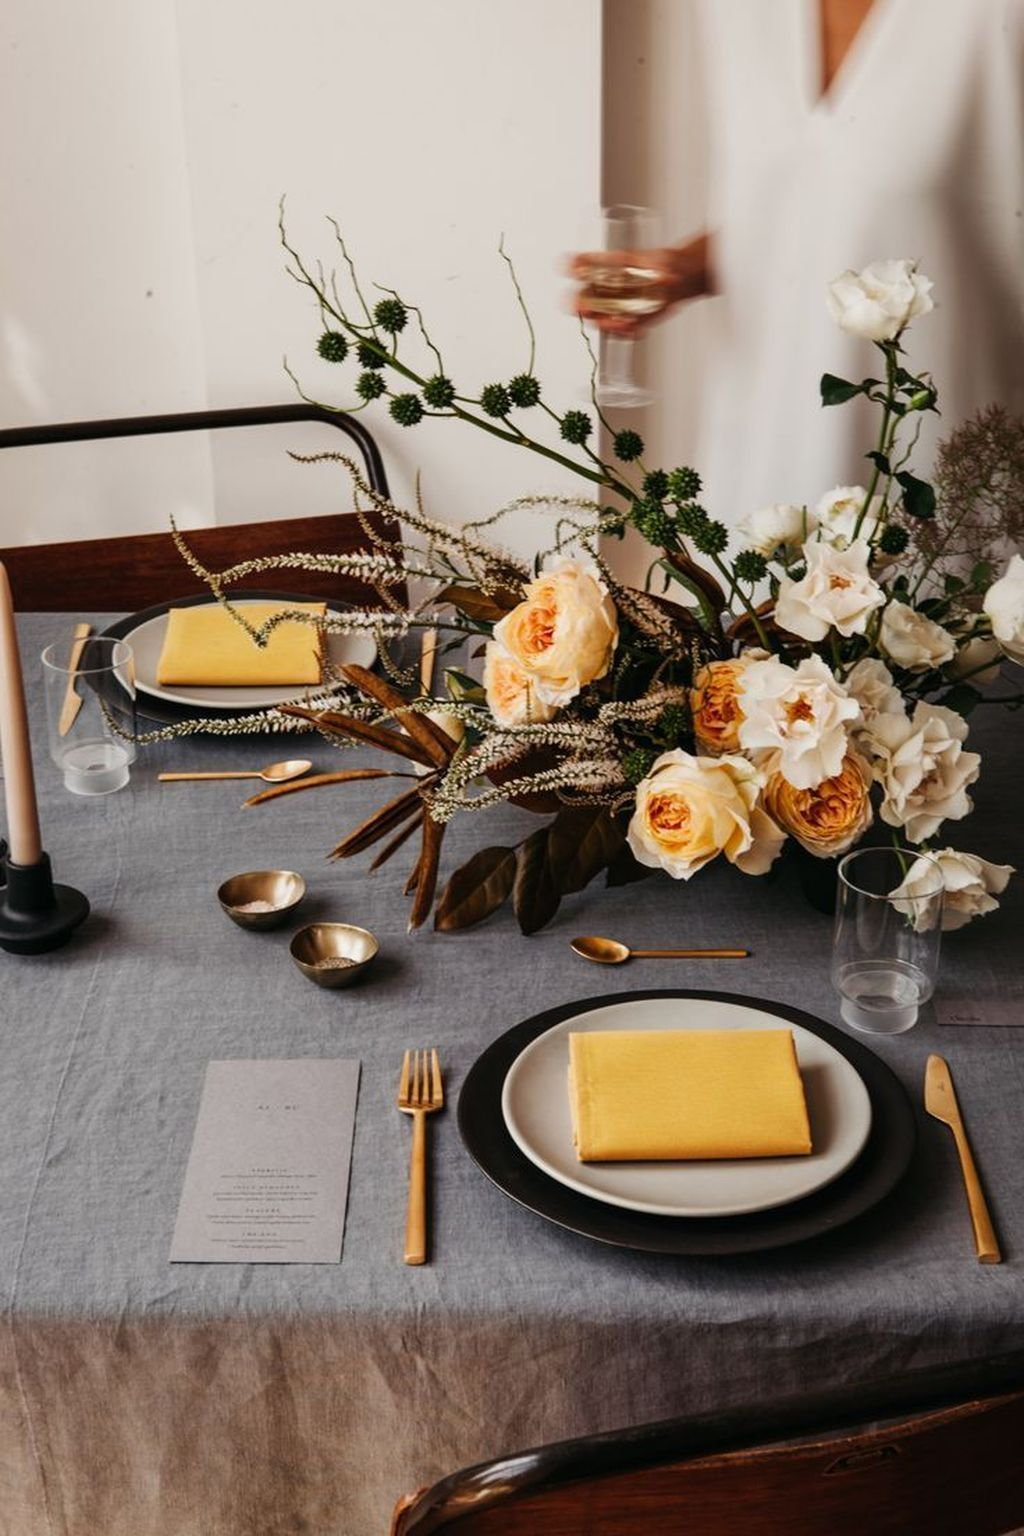 Seven Table Setting Ideas We Re Loving For A Holiday Dinner